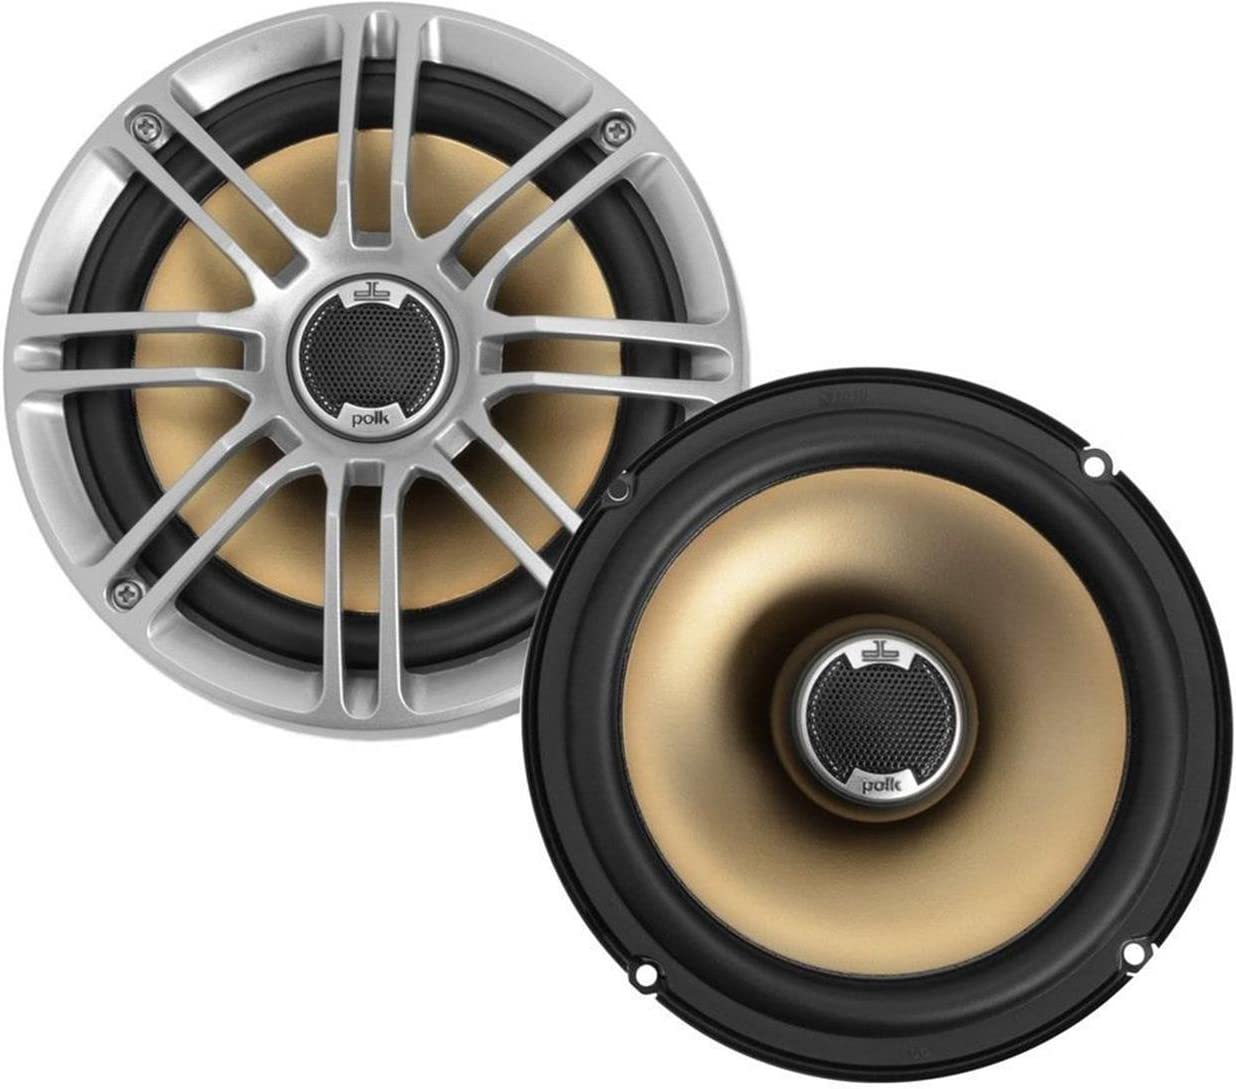 """Polk Audio DB651 6.5""""/6.75"""" 2-Way Marine Certified db Series Car Speakers with Liquid Cooled Silk Tweeters (Discontinued by Manufacturer)"""